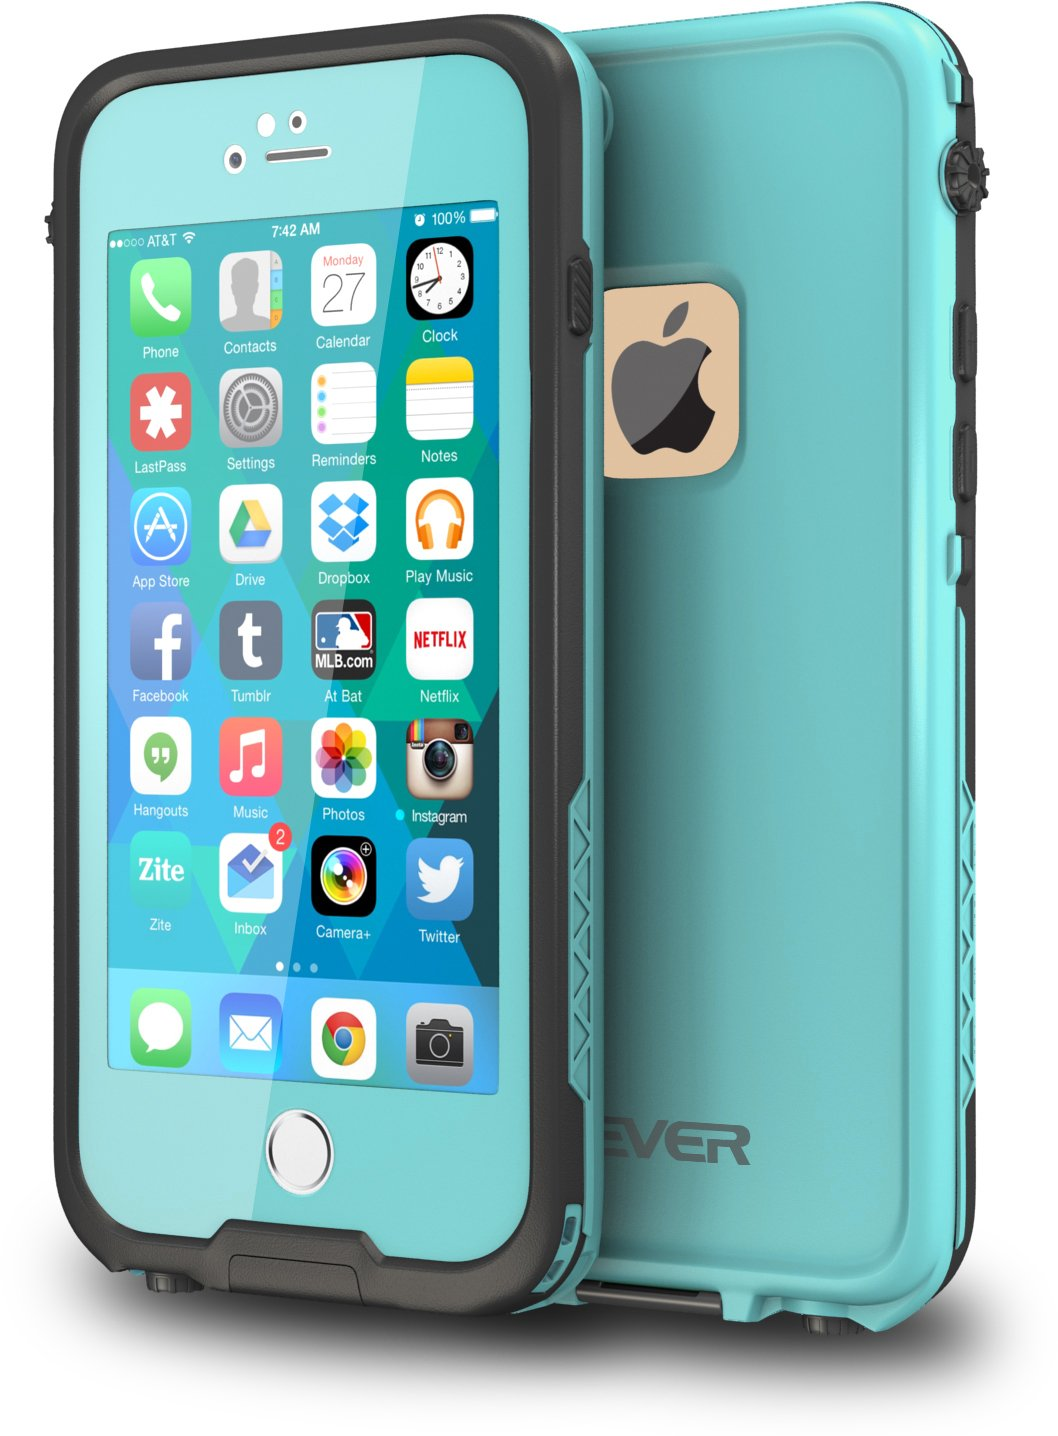 CellEver iPhone 6 / 6s Case Waterproof Shockproof IP68 Certified SandProof Snowproof Full Body Protective Cover Fits Apple iPhone 6 and iPhone 6s (4.7'') - Ocean Blue